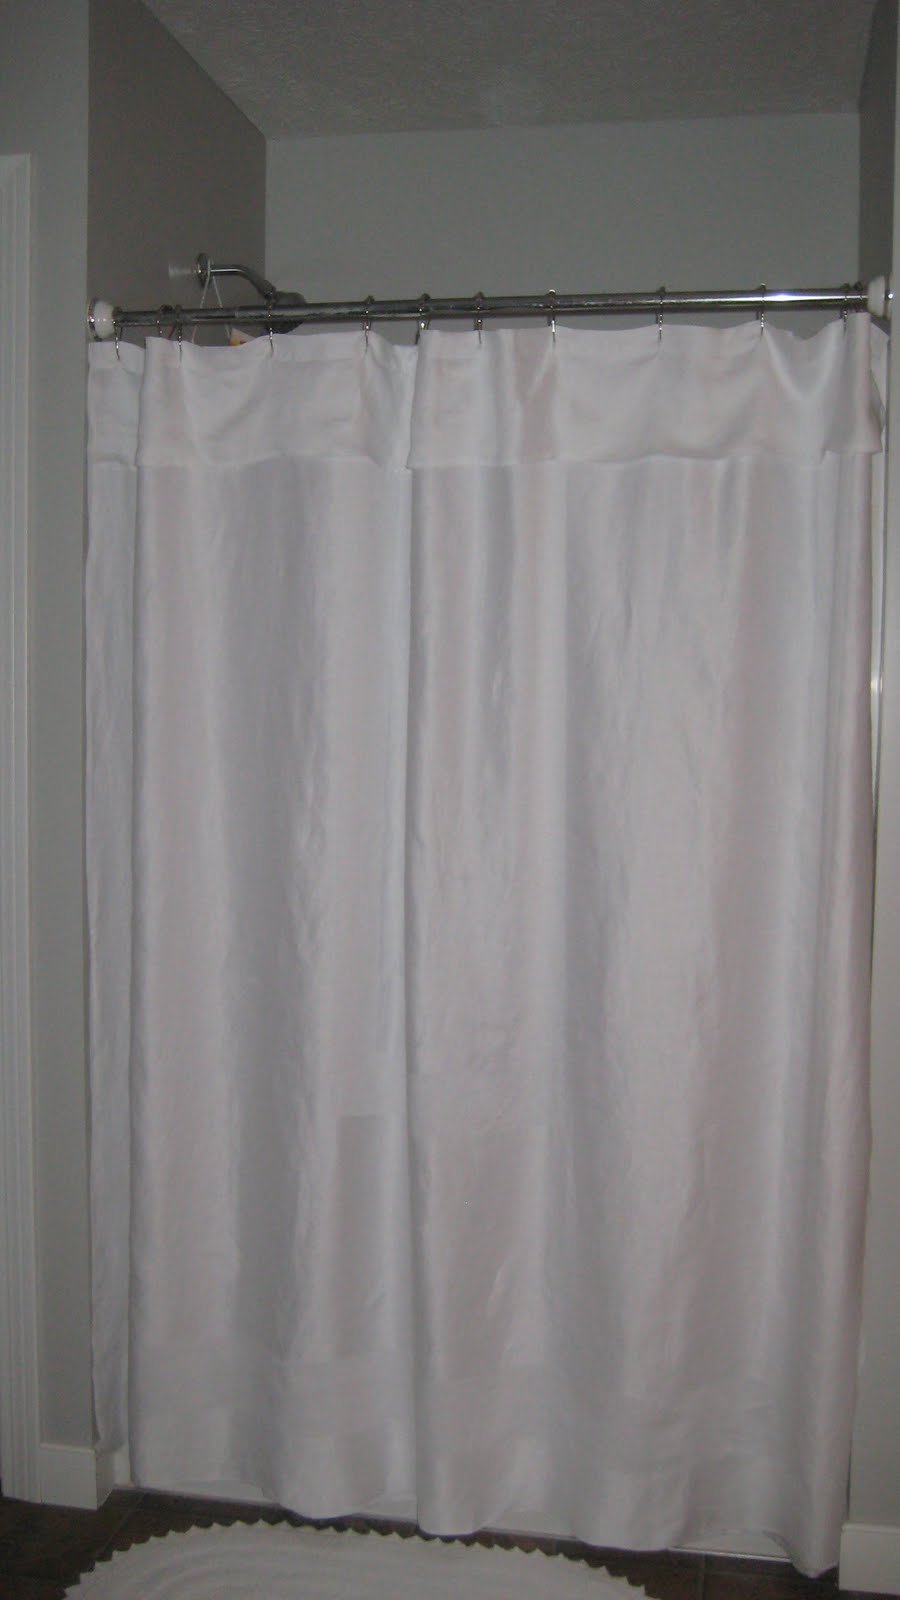 grommet beige with ideas curtains linen white best shower lofty off about on panels curtain